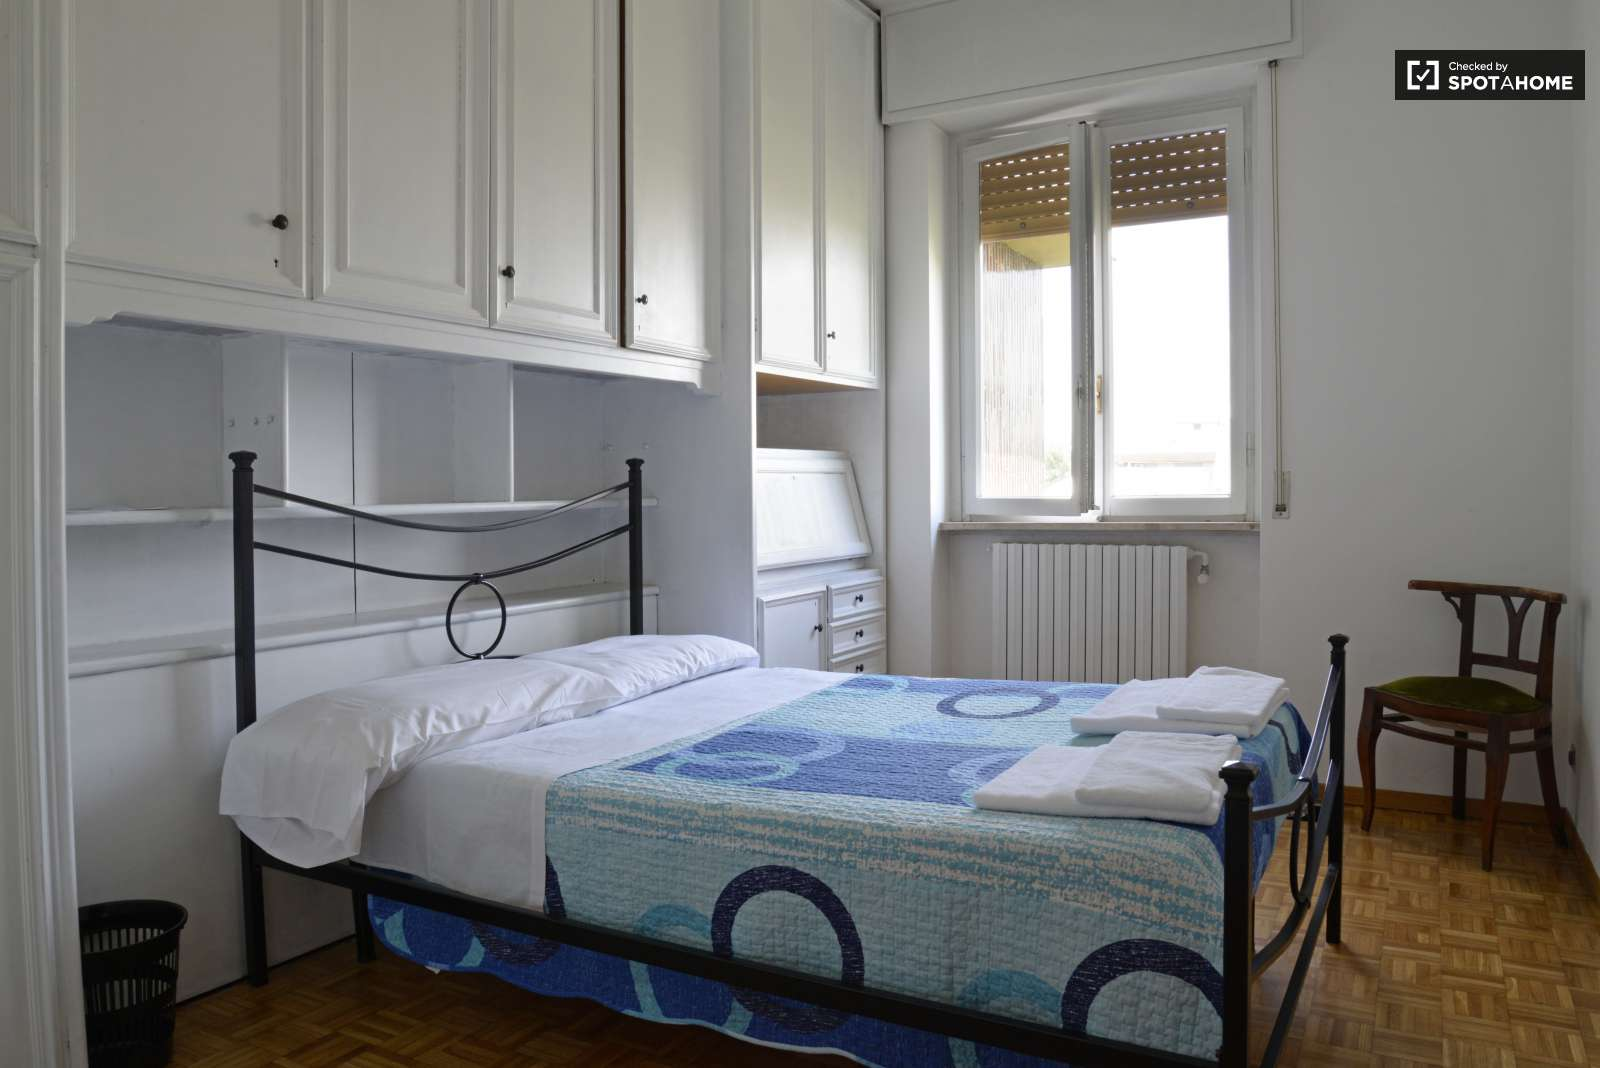 Minimum Bedroom Size For Double Bed Double Bed In Rooms For Rent In A 4 Bedroom Apartment Spotahome